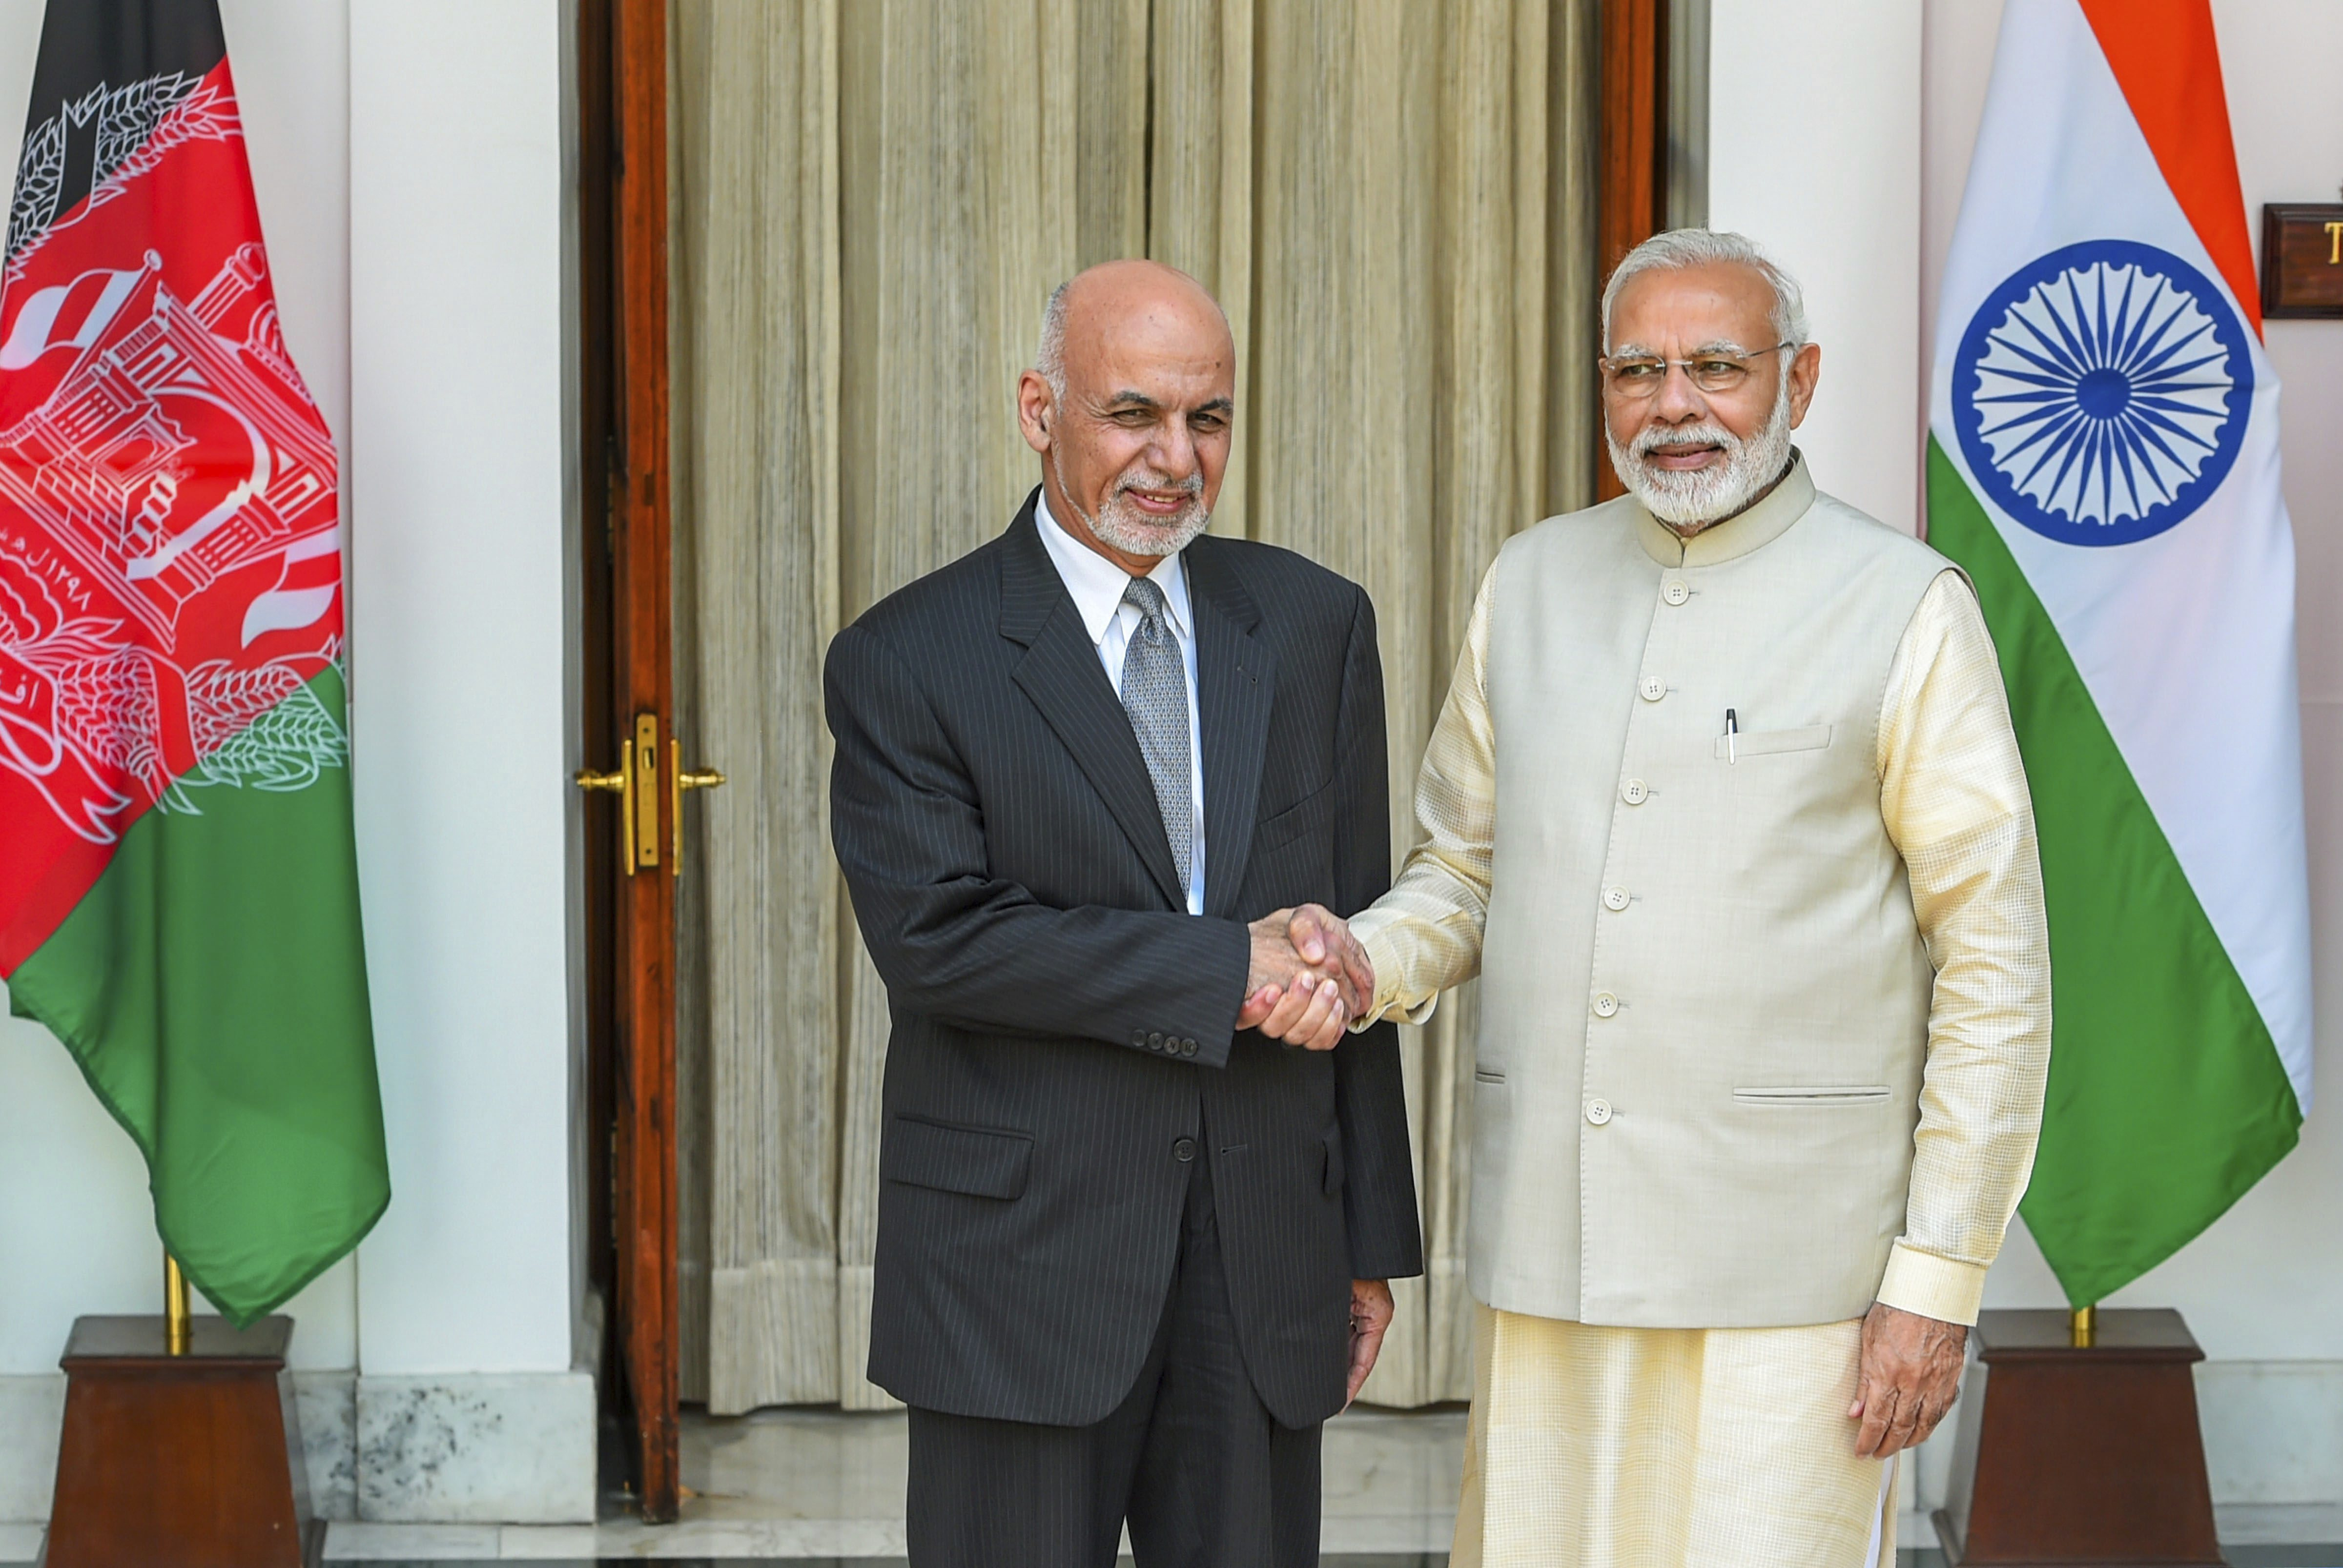 Prime Minister Narendra Modi (R) and Afghanistan President Ashraf Ghani ahead of a meeting at Hyderabad House, in New Delhi - PTI